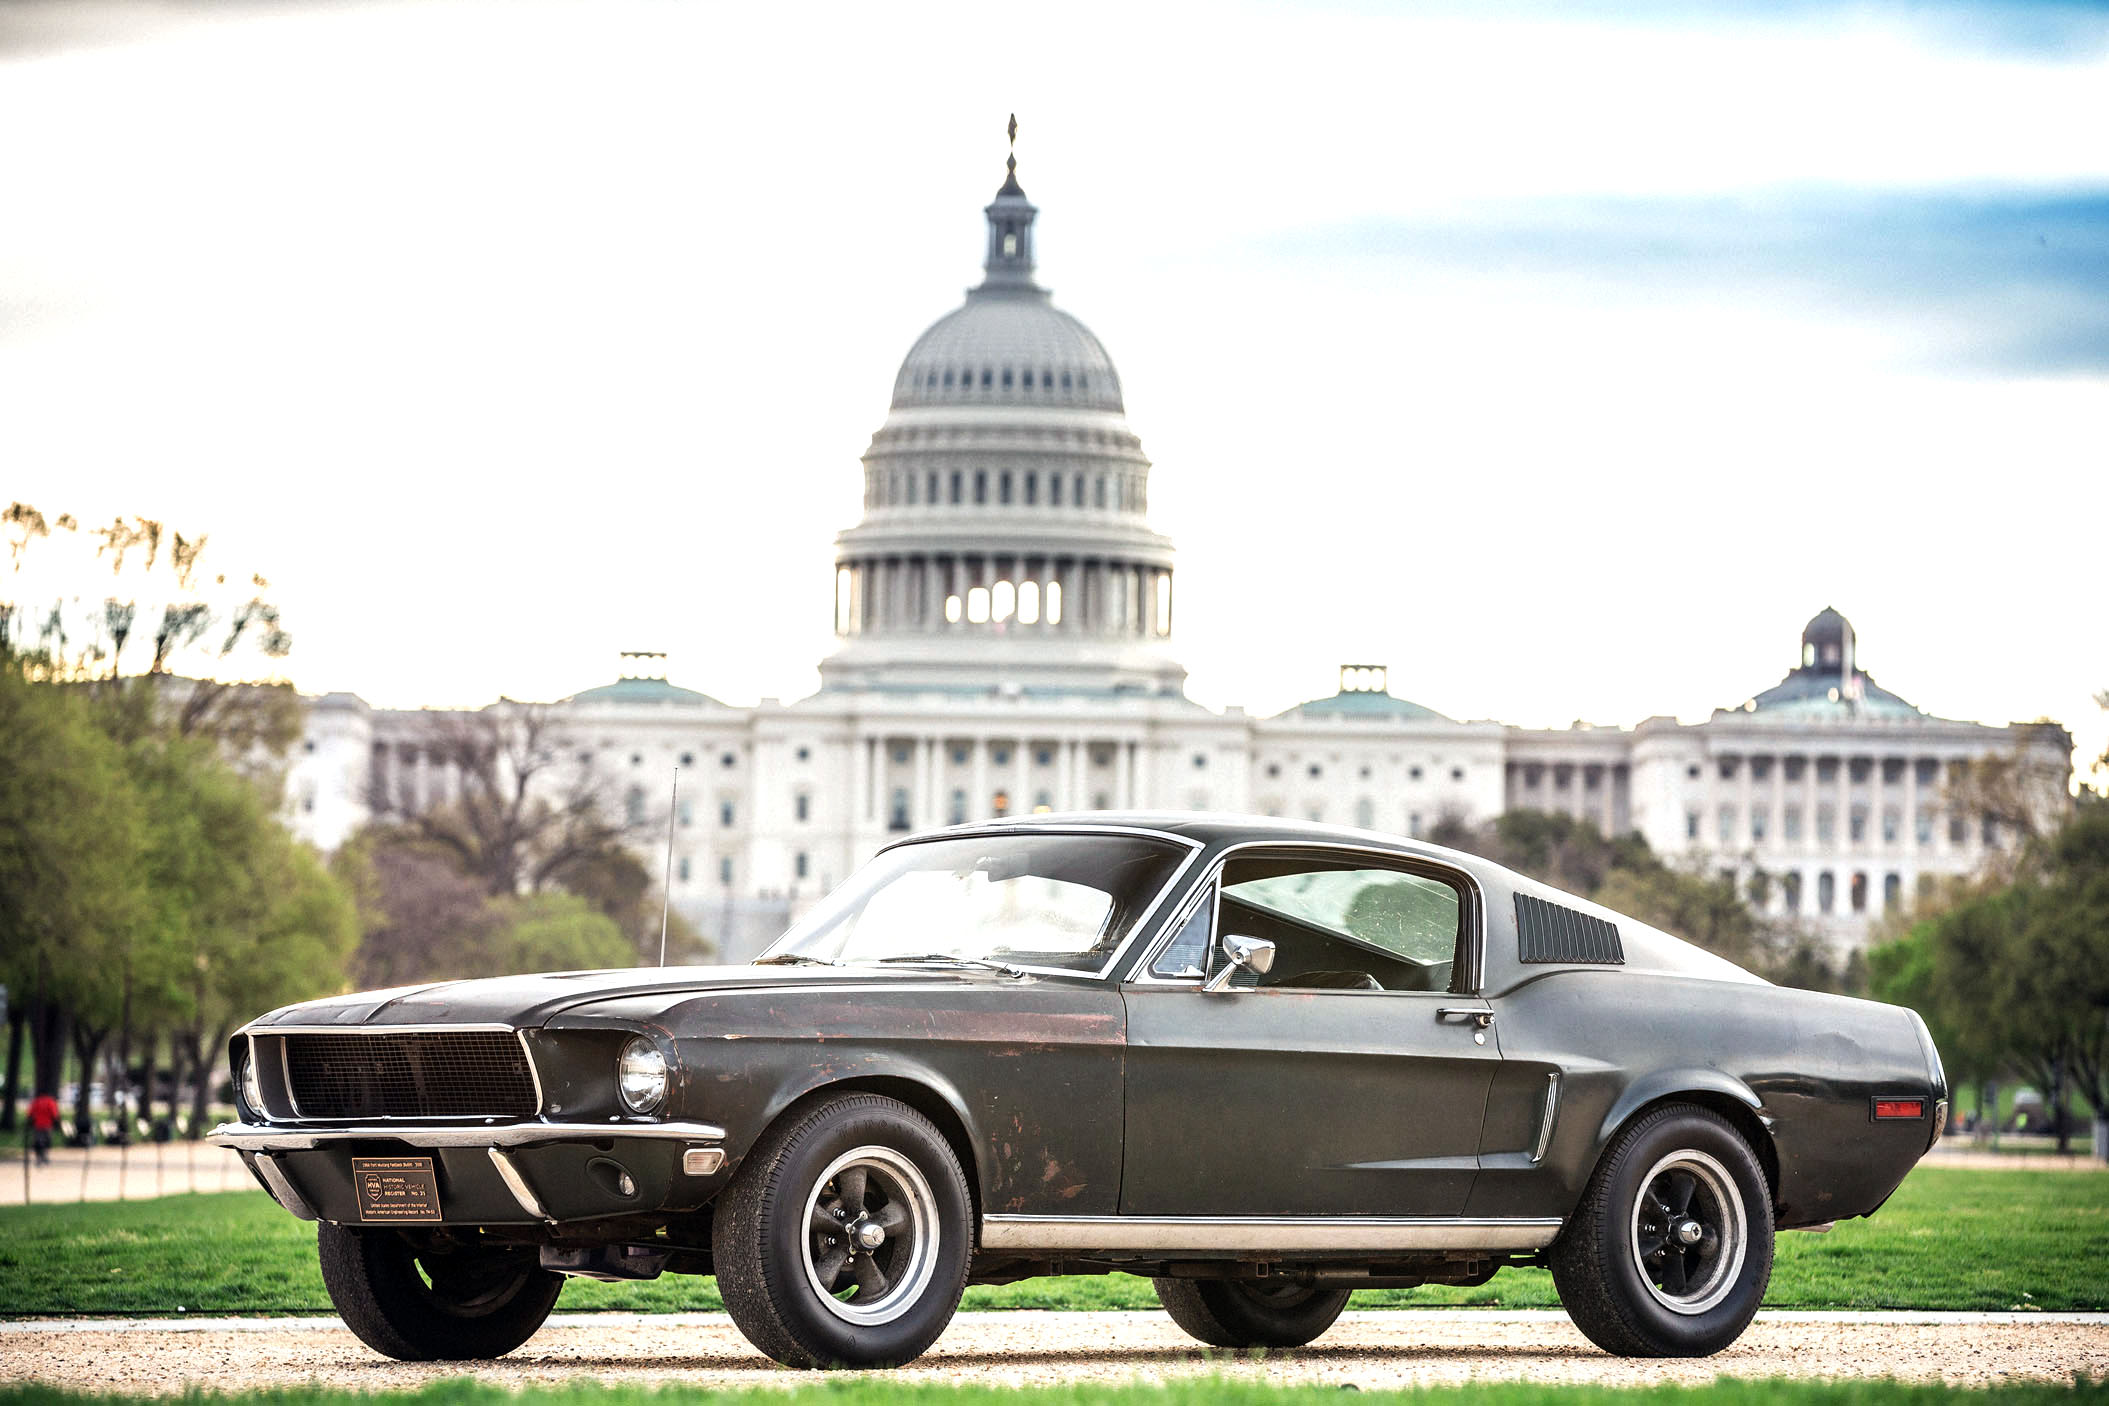 """Once considered lost forever, the original 1968 Ford Mustang GT from the Warner Bros. movie """"Bullitt"""" is headed for Washington, D.C. The iconic car will be on display at the National Mall in celebration of Mustang's 54th birthday and the 50th anniversary of """"Bullitt."""""""